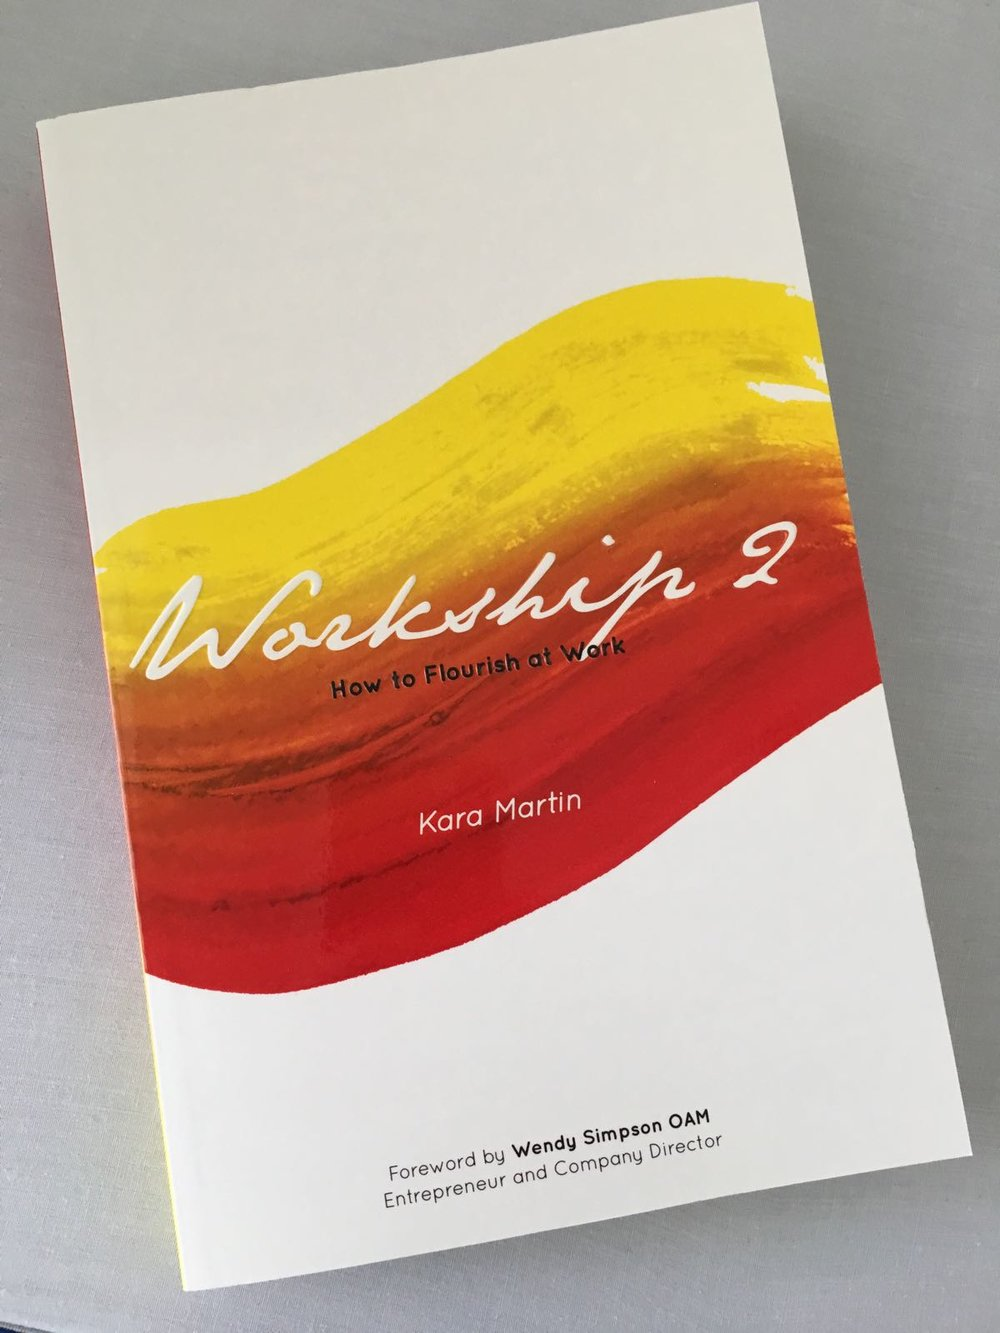 Here is an actual copy of  Workship 2: How to Flourish at Work